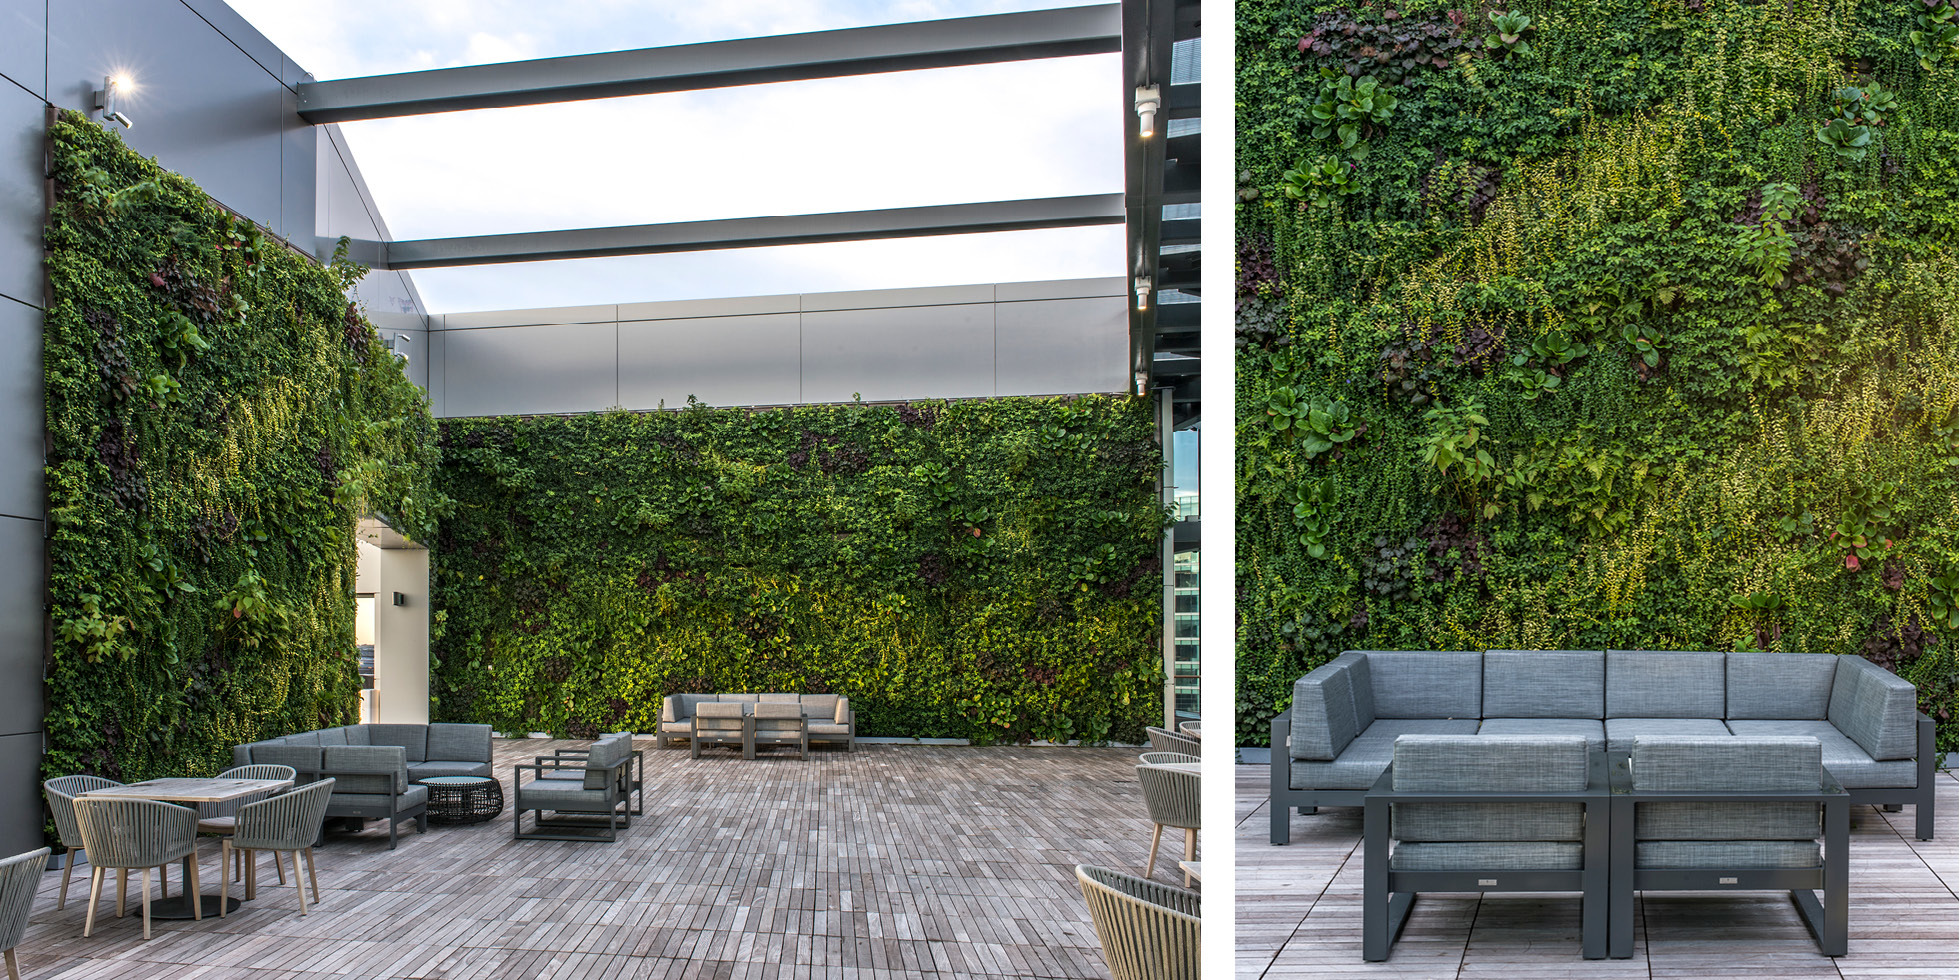 Boston Pier 4 Living Wall by Habitat Horticulture - View 3